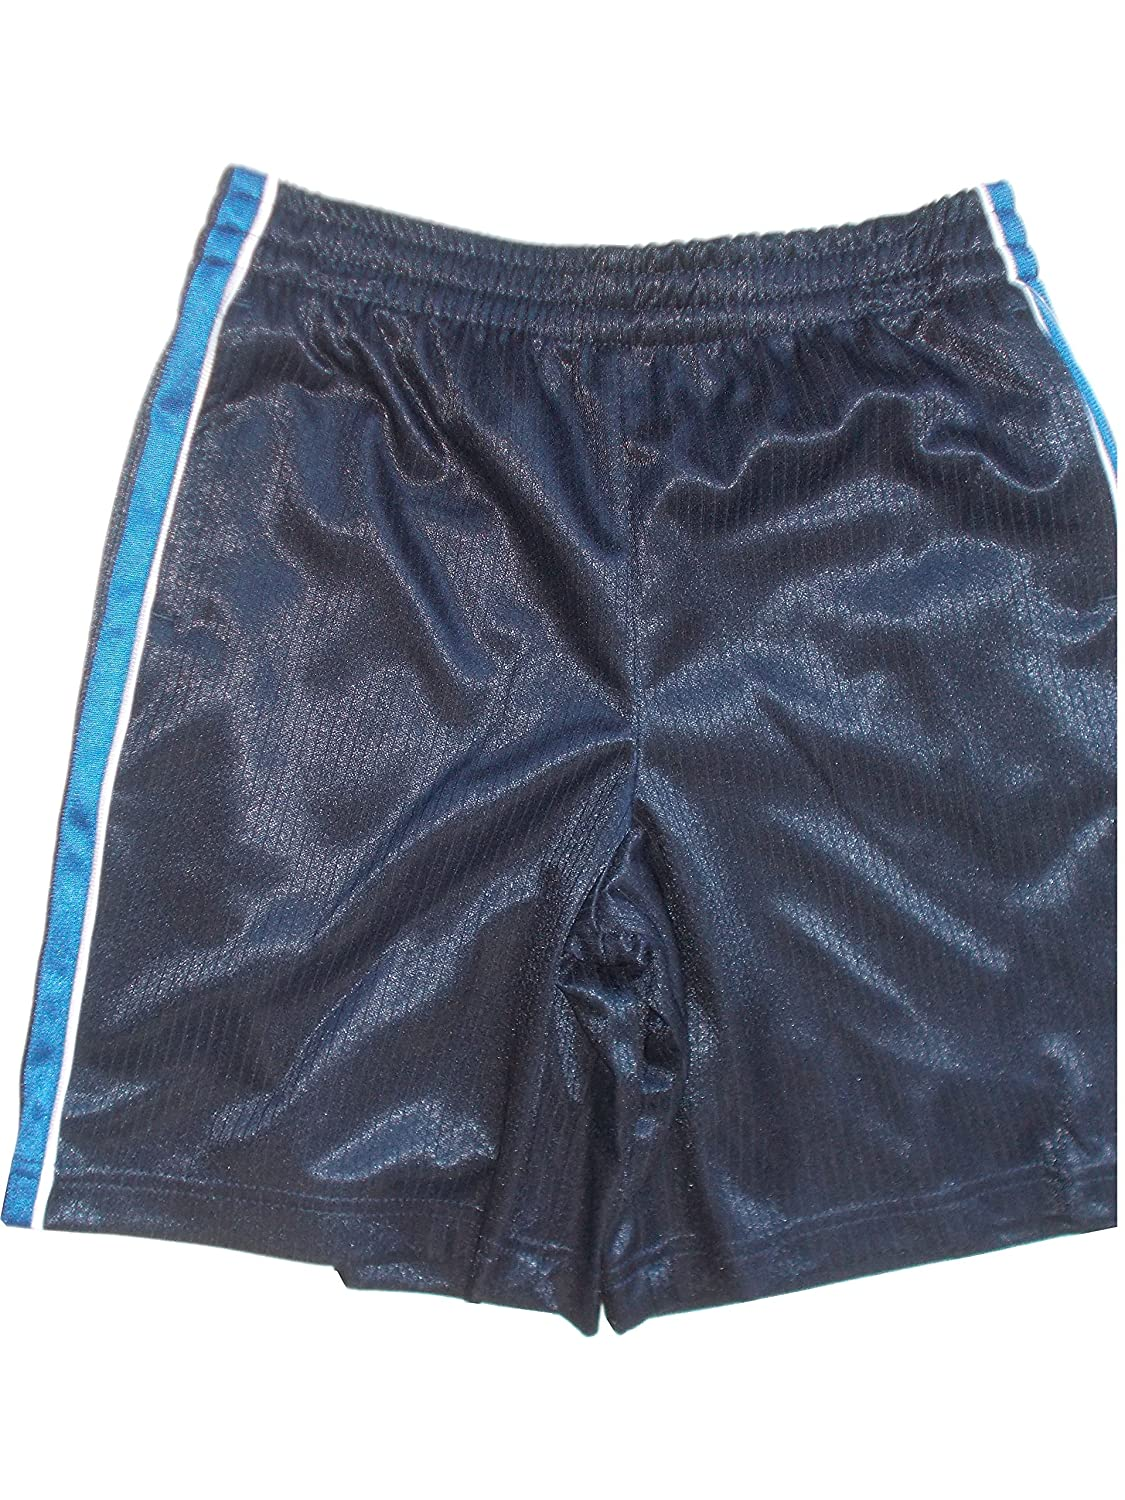 Medium 8//10 Boys Basketball Shorts